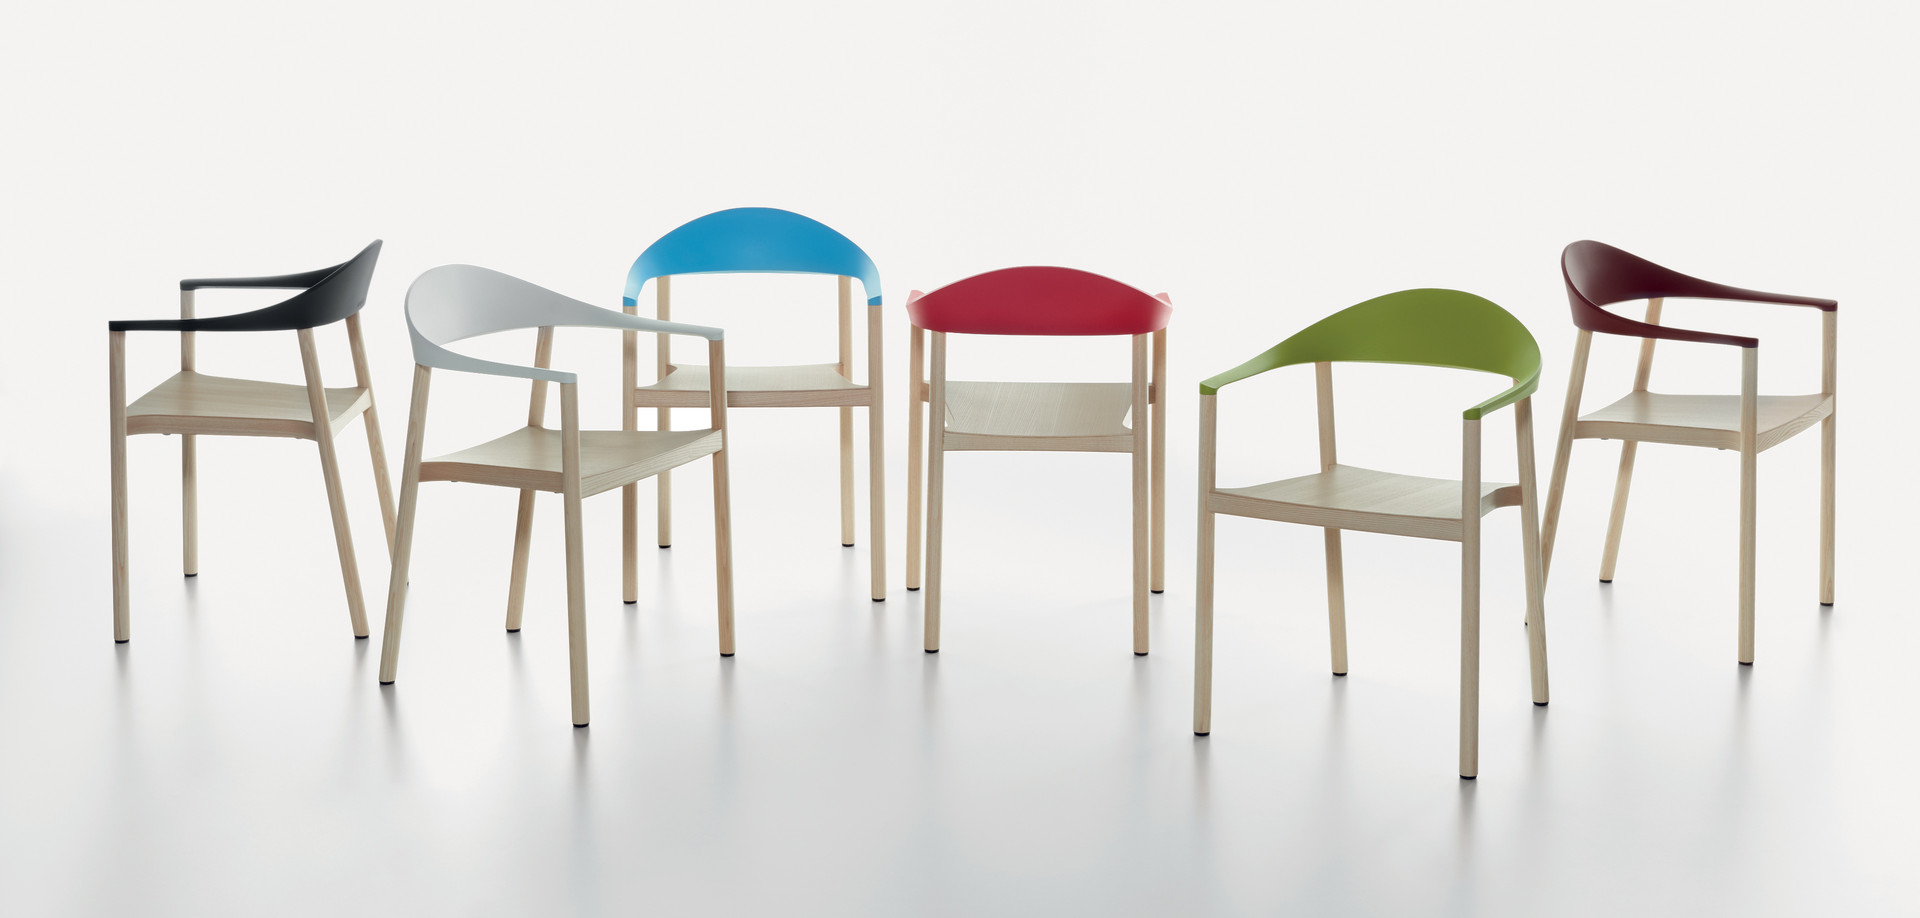 Plank - MONZA armchair, ash natural, backrest in black, white, light blue, traffic read, yellow green, wine red